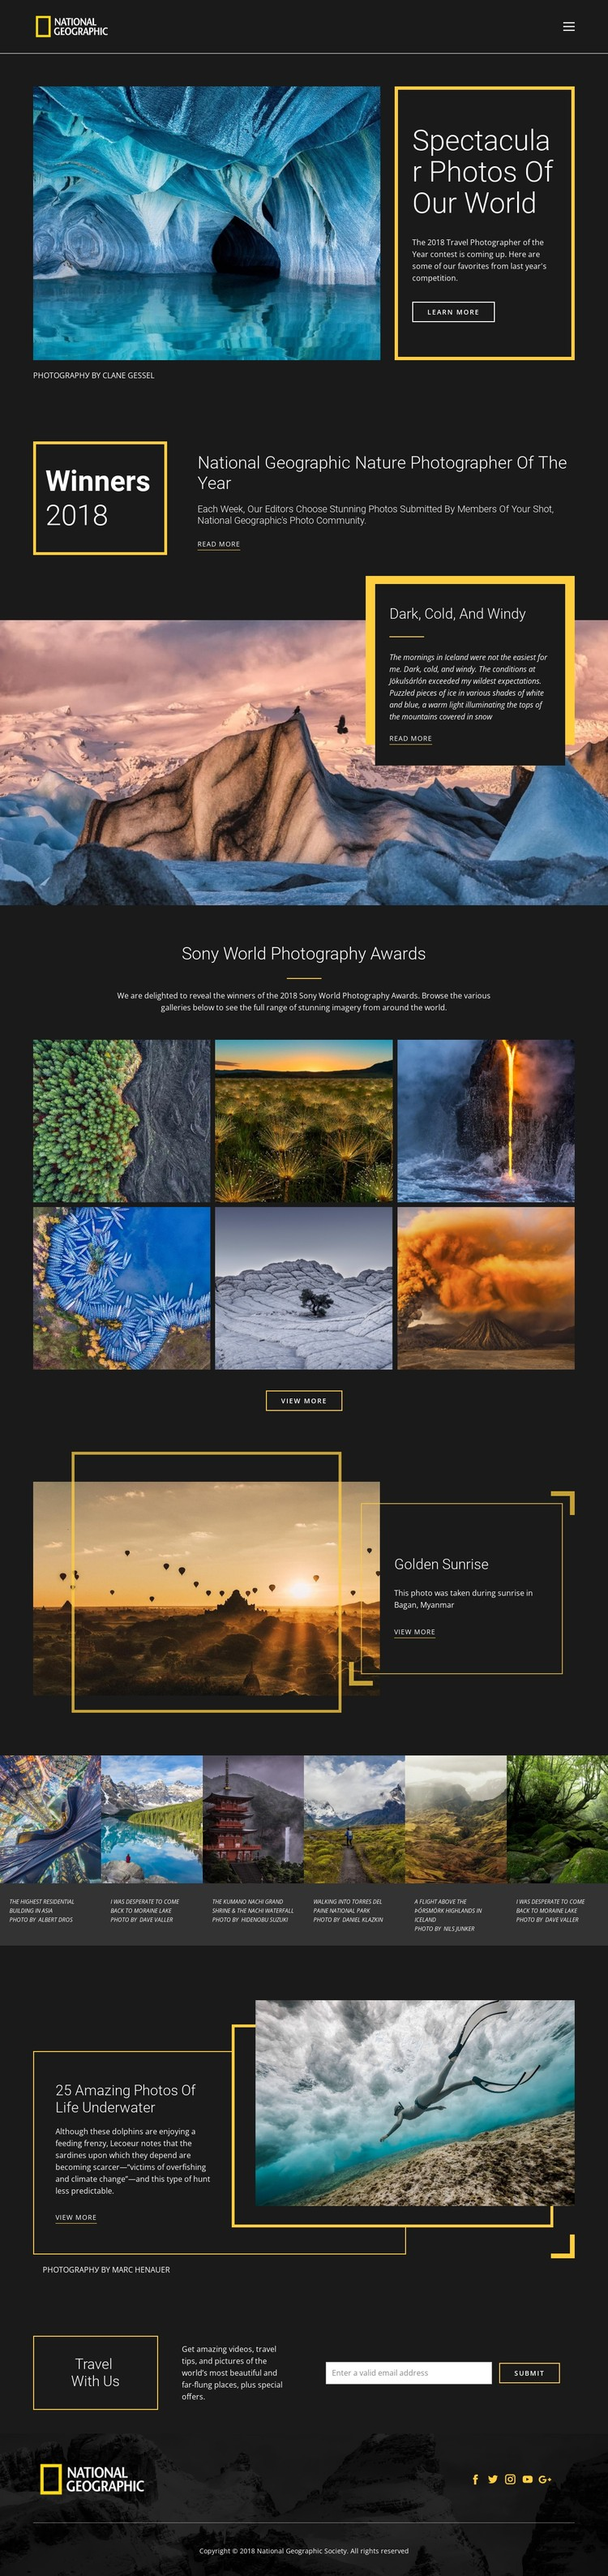 Pictures of nature CSS Template